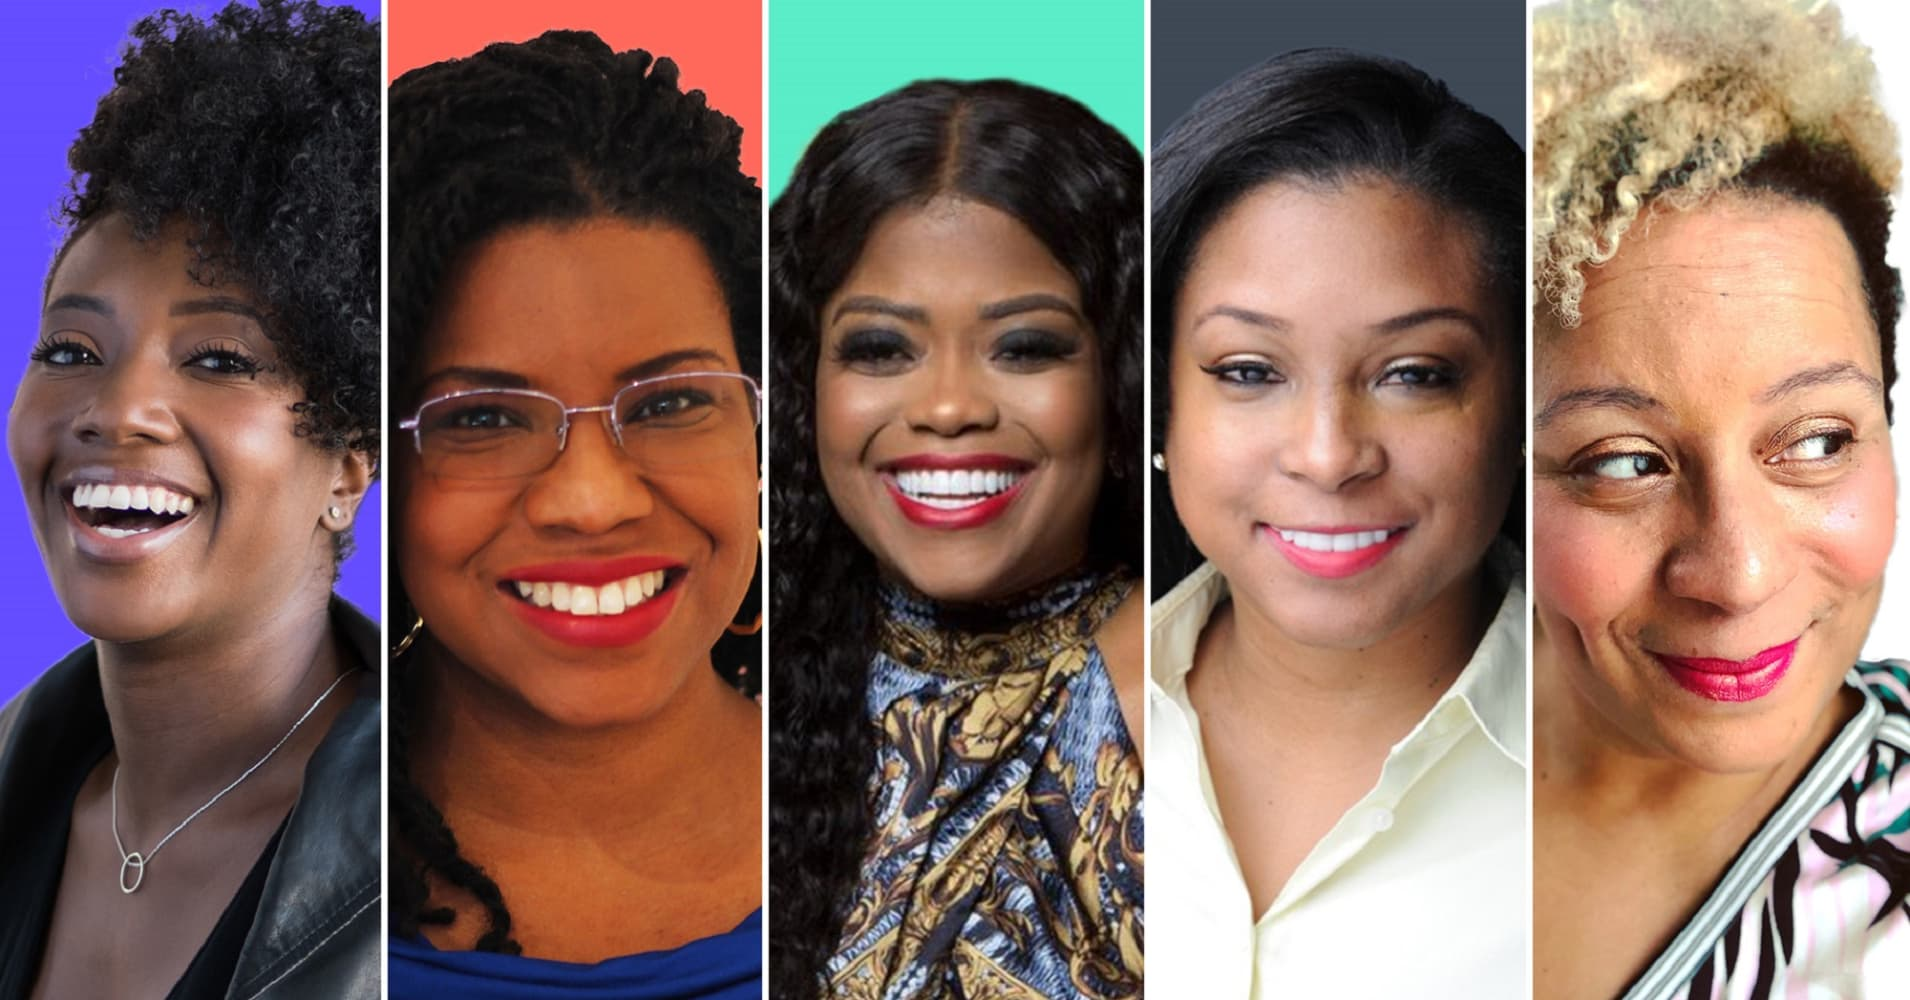 Tonya Rapley, April Reign, Karen Civil, Minda Harts and Leslie Mac share stories about negotiating your worth in the workplace.